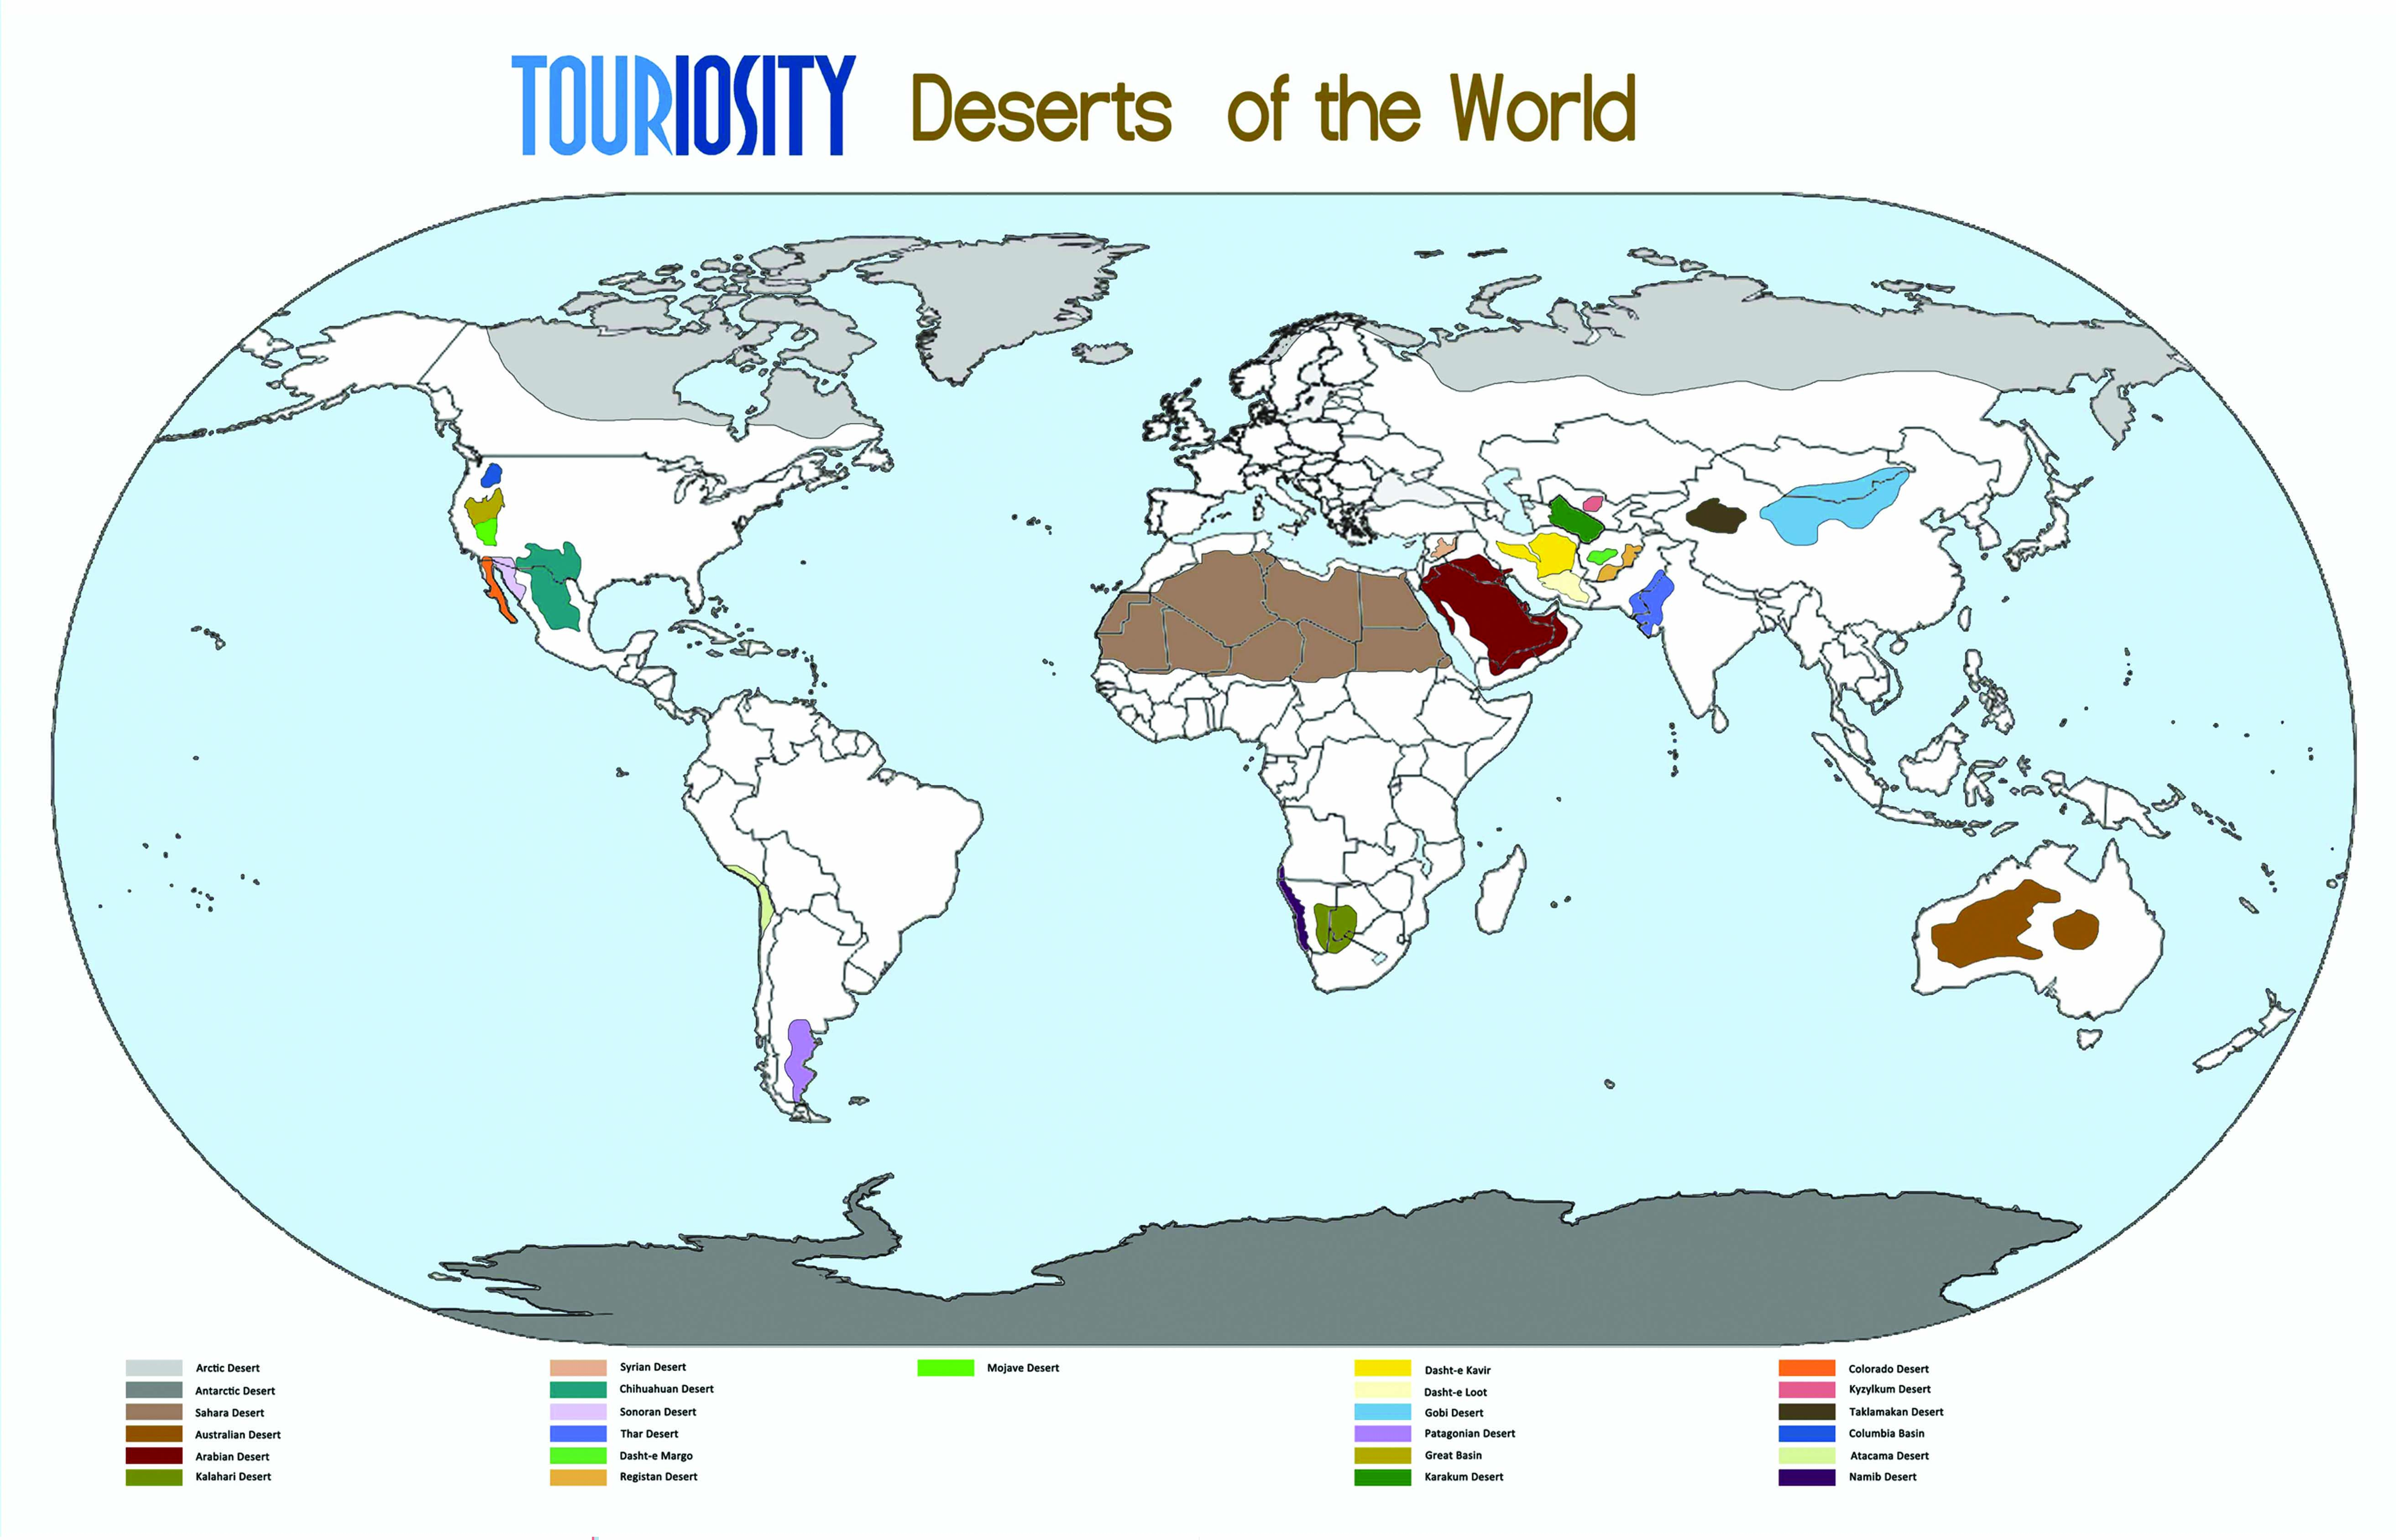 25 Deserts of the world